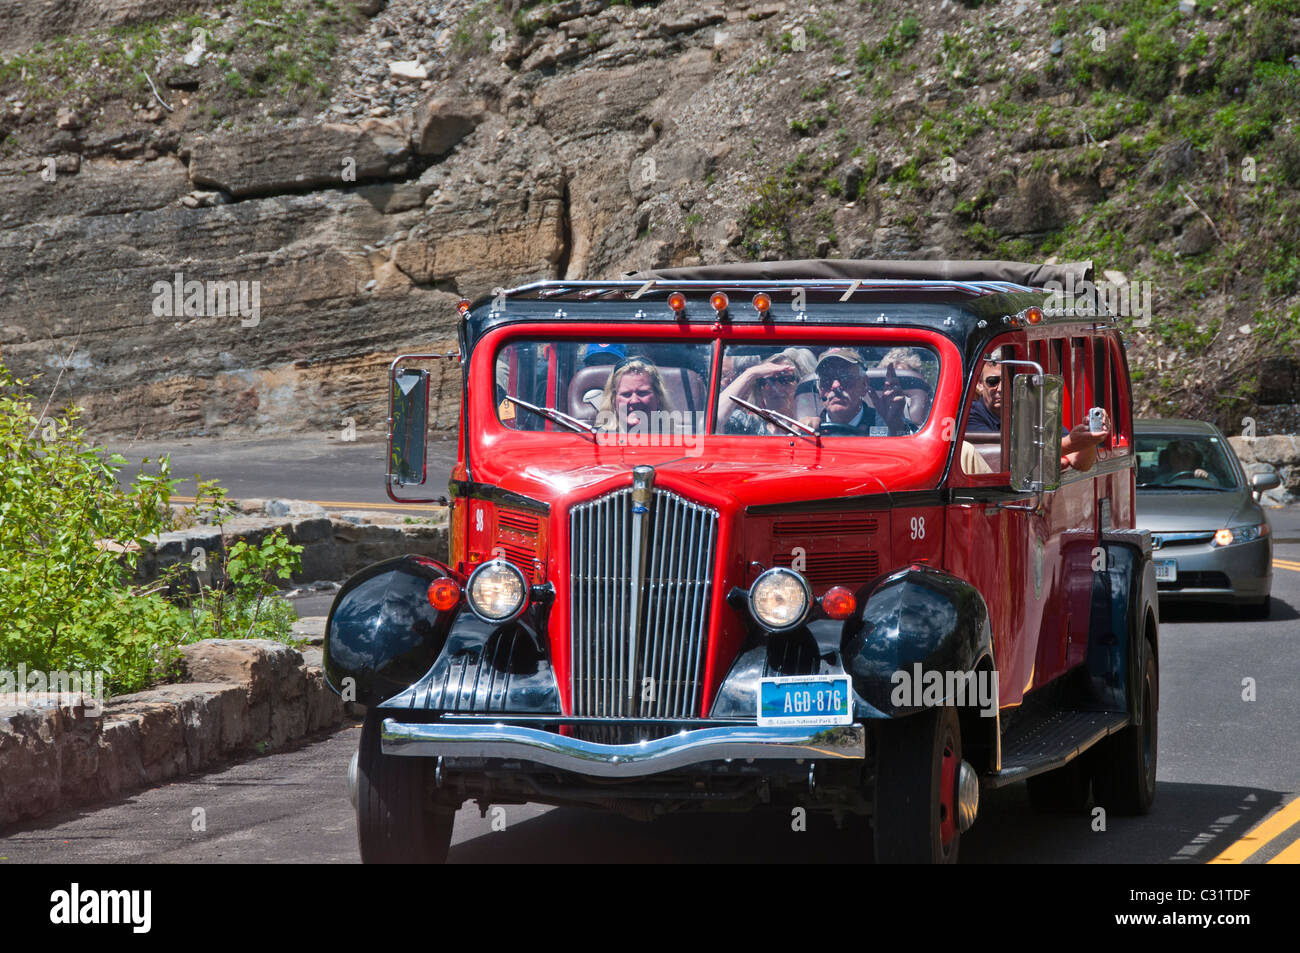 Red bus on the Going-to-the-Sun Road, Glacier National Park, Montana. - Stock Image